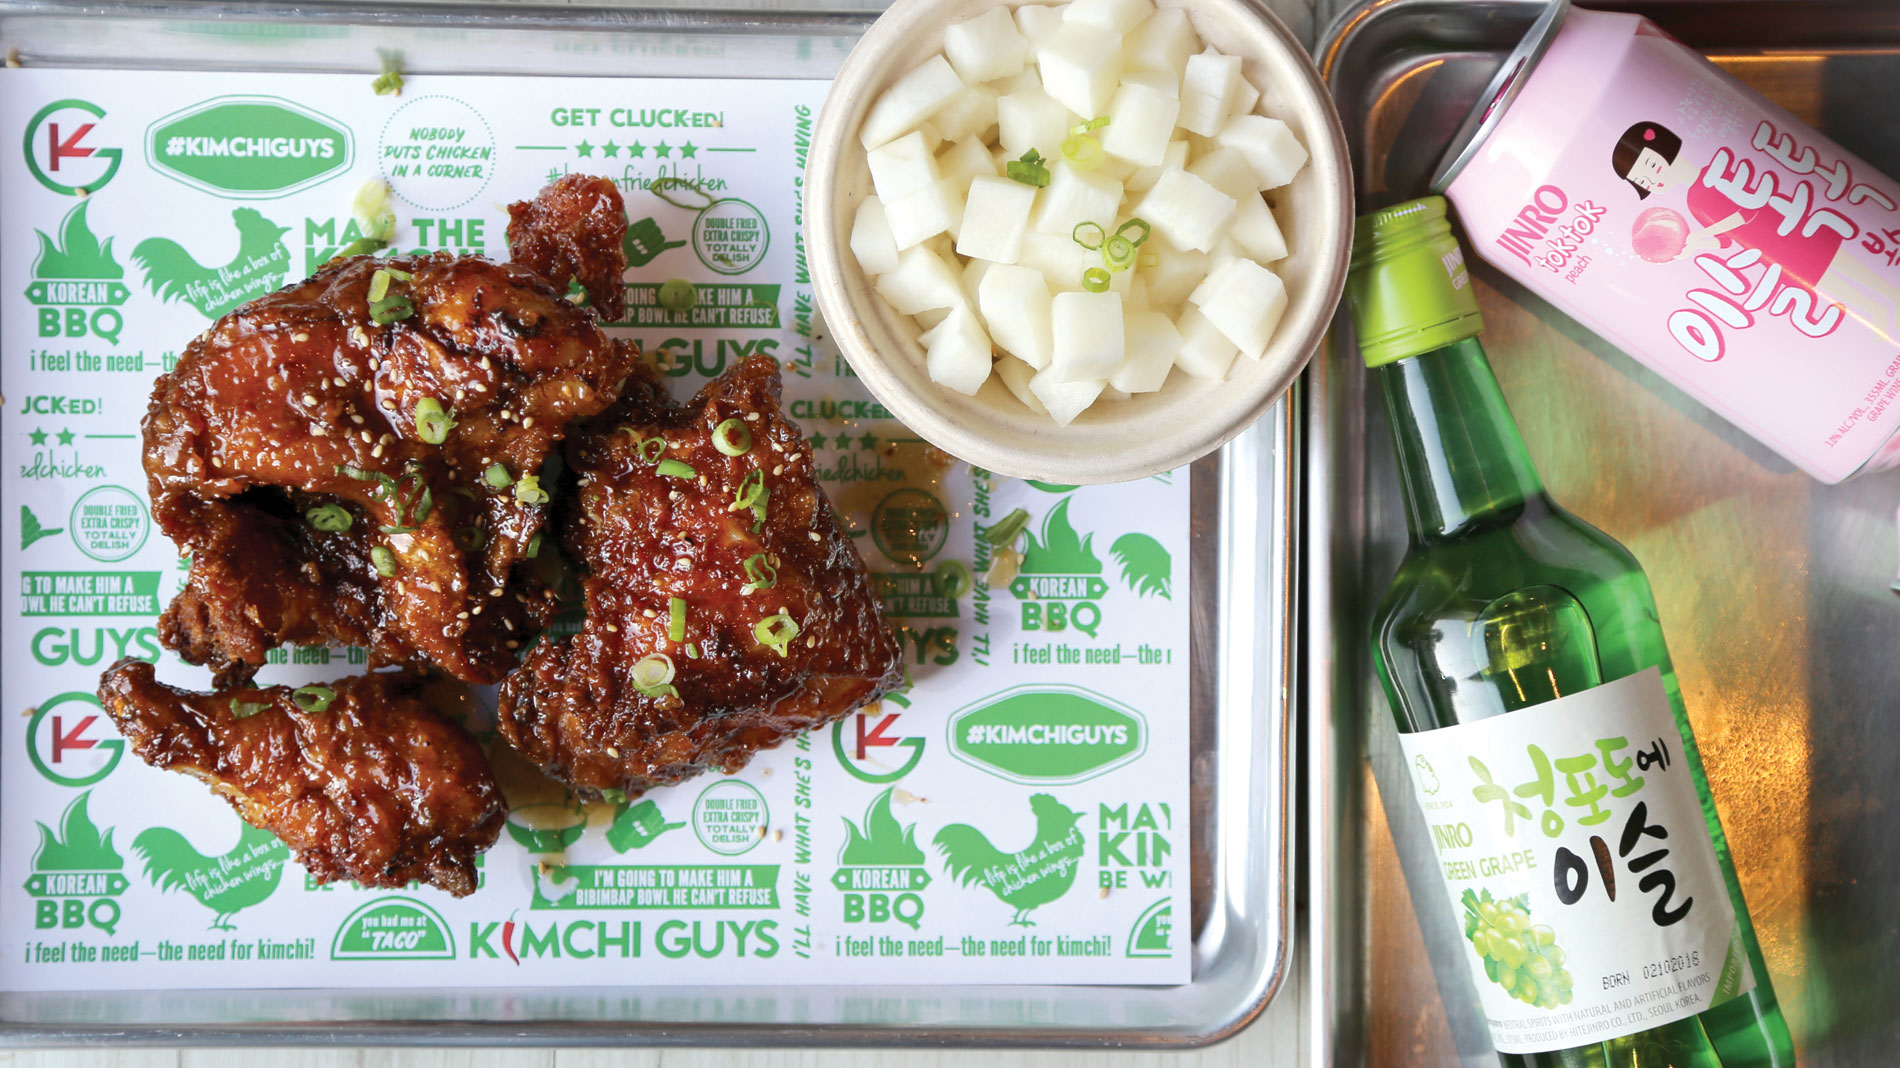 A tray with Korean fried chicken, white radish kimchi and bottles of Jinro soju